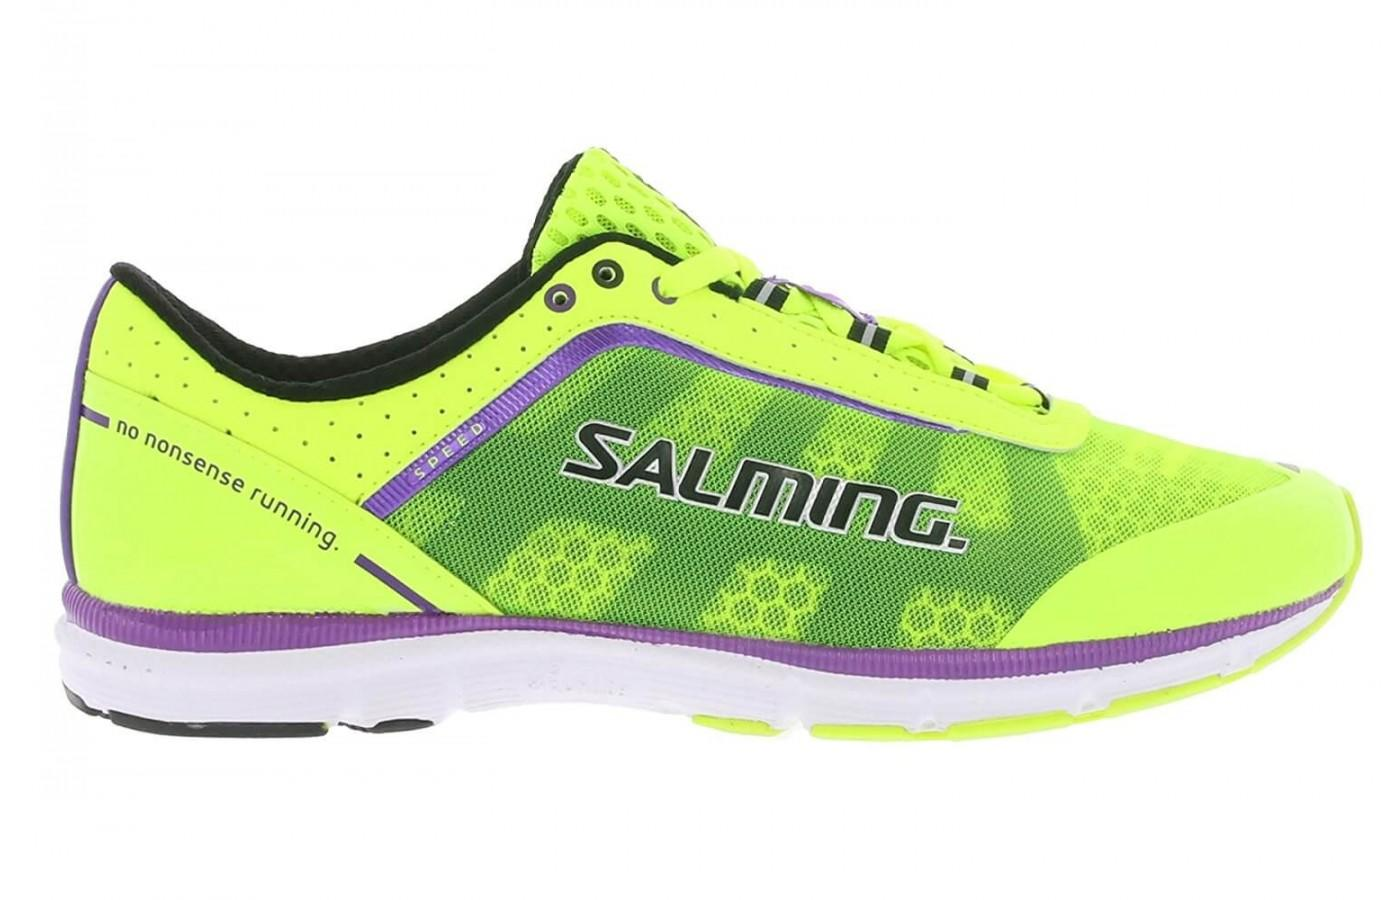 a good look at the side of the Salming Speed